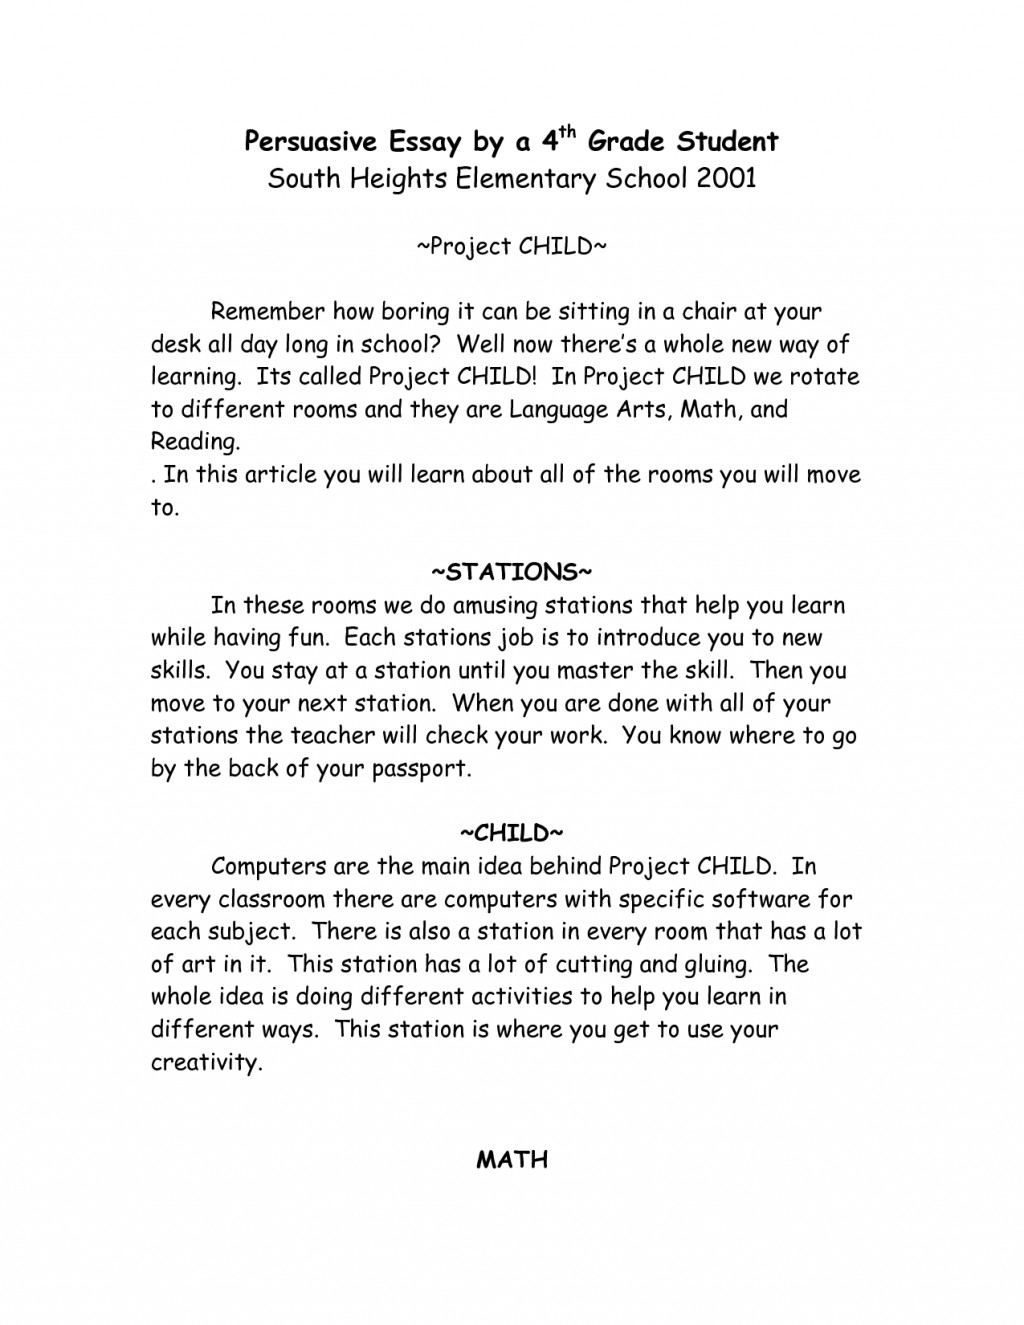 007 Persuasive Essay Definition Example How To Write